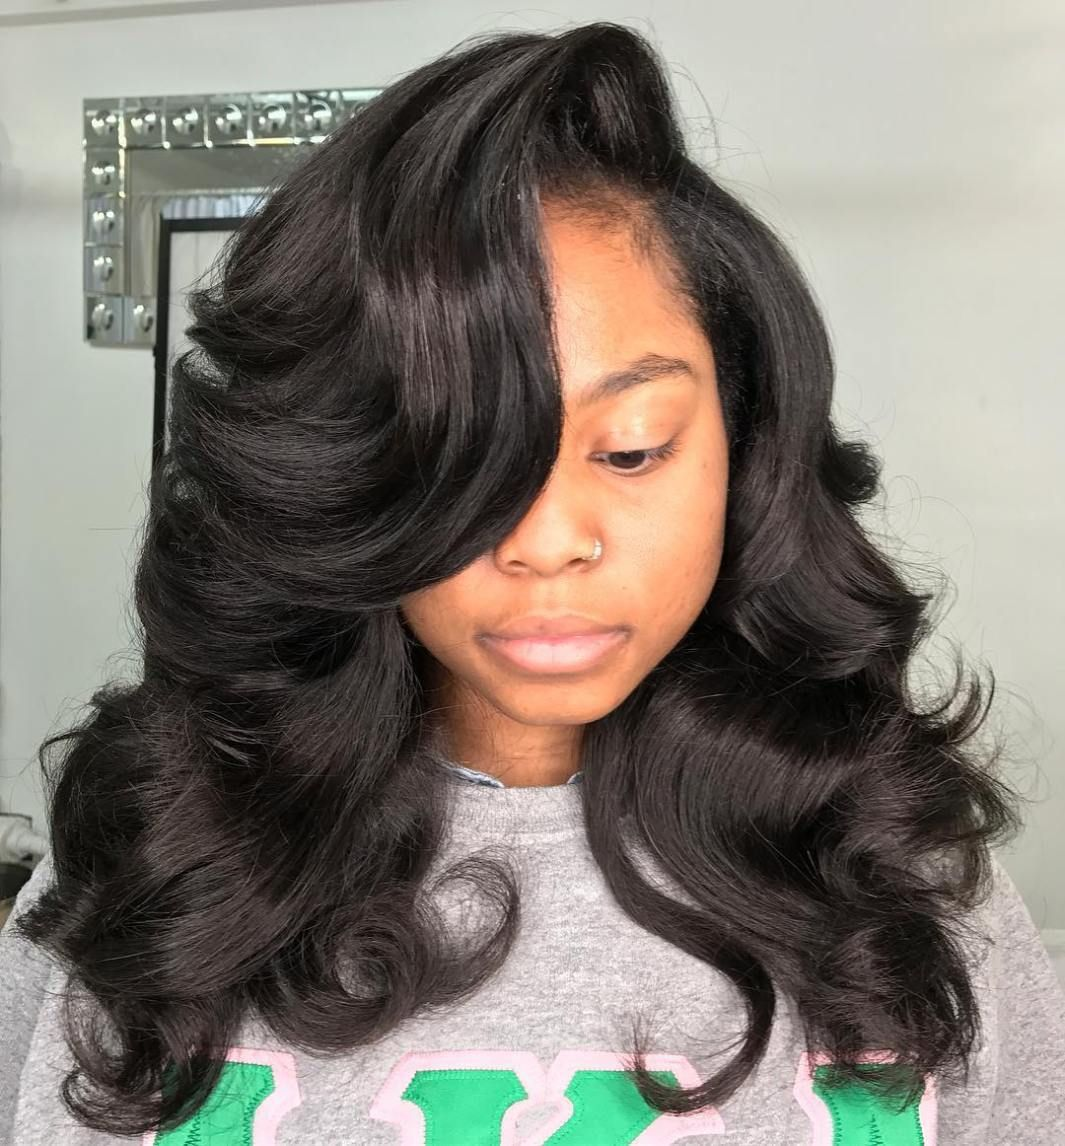 30 Weave Hairstyles To Make Heads Turn Weave Hairstyles Hair Styles Hair